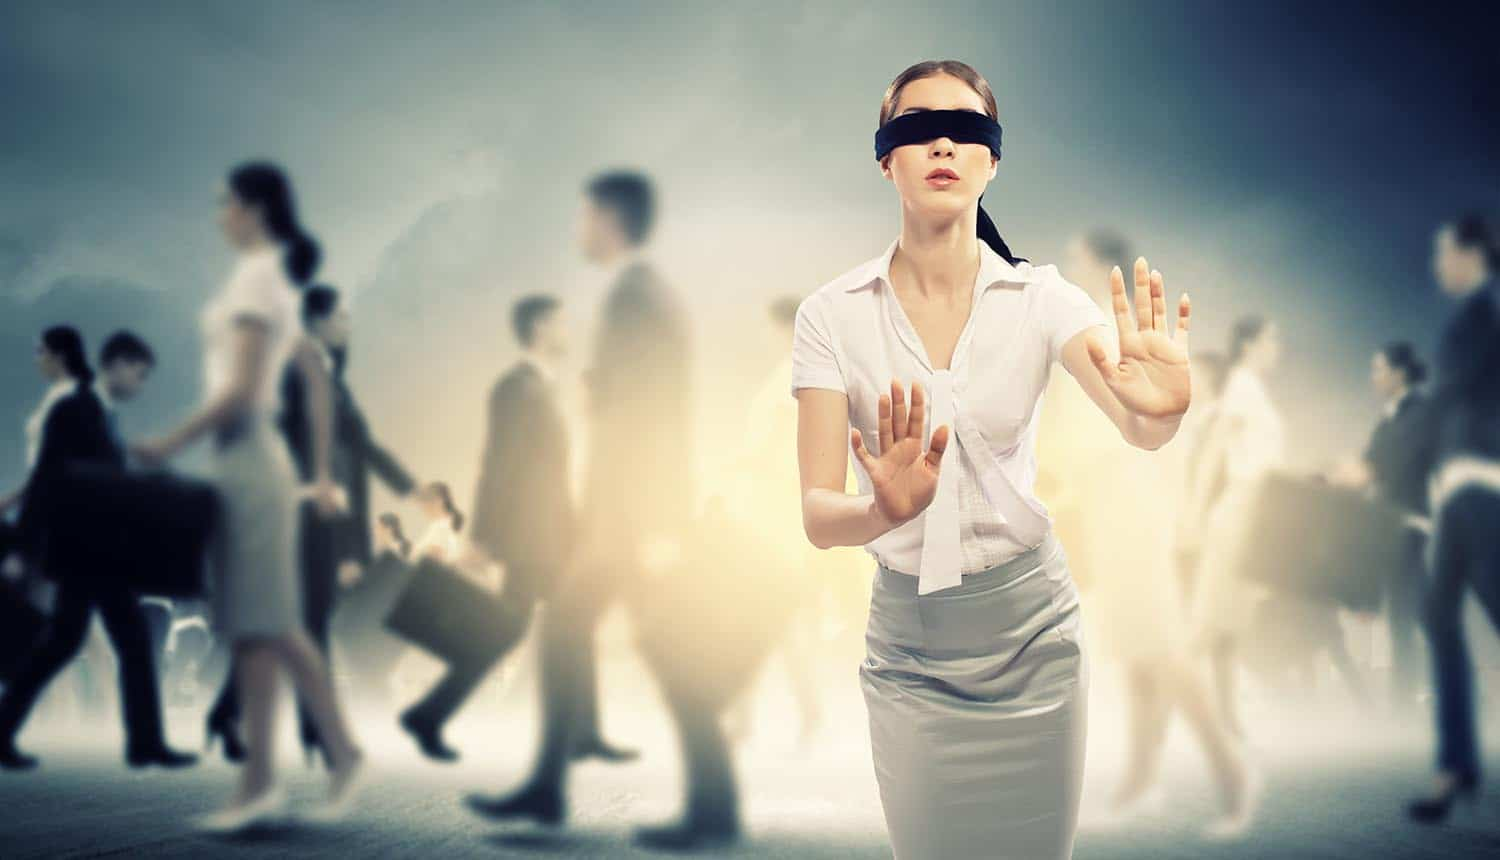 Woman in blindfold walking among group of people showing how Americans are lost when dealing with data breaches